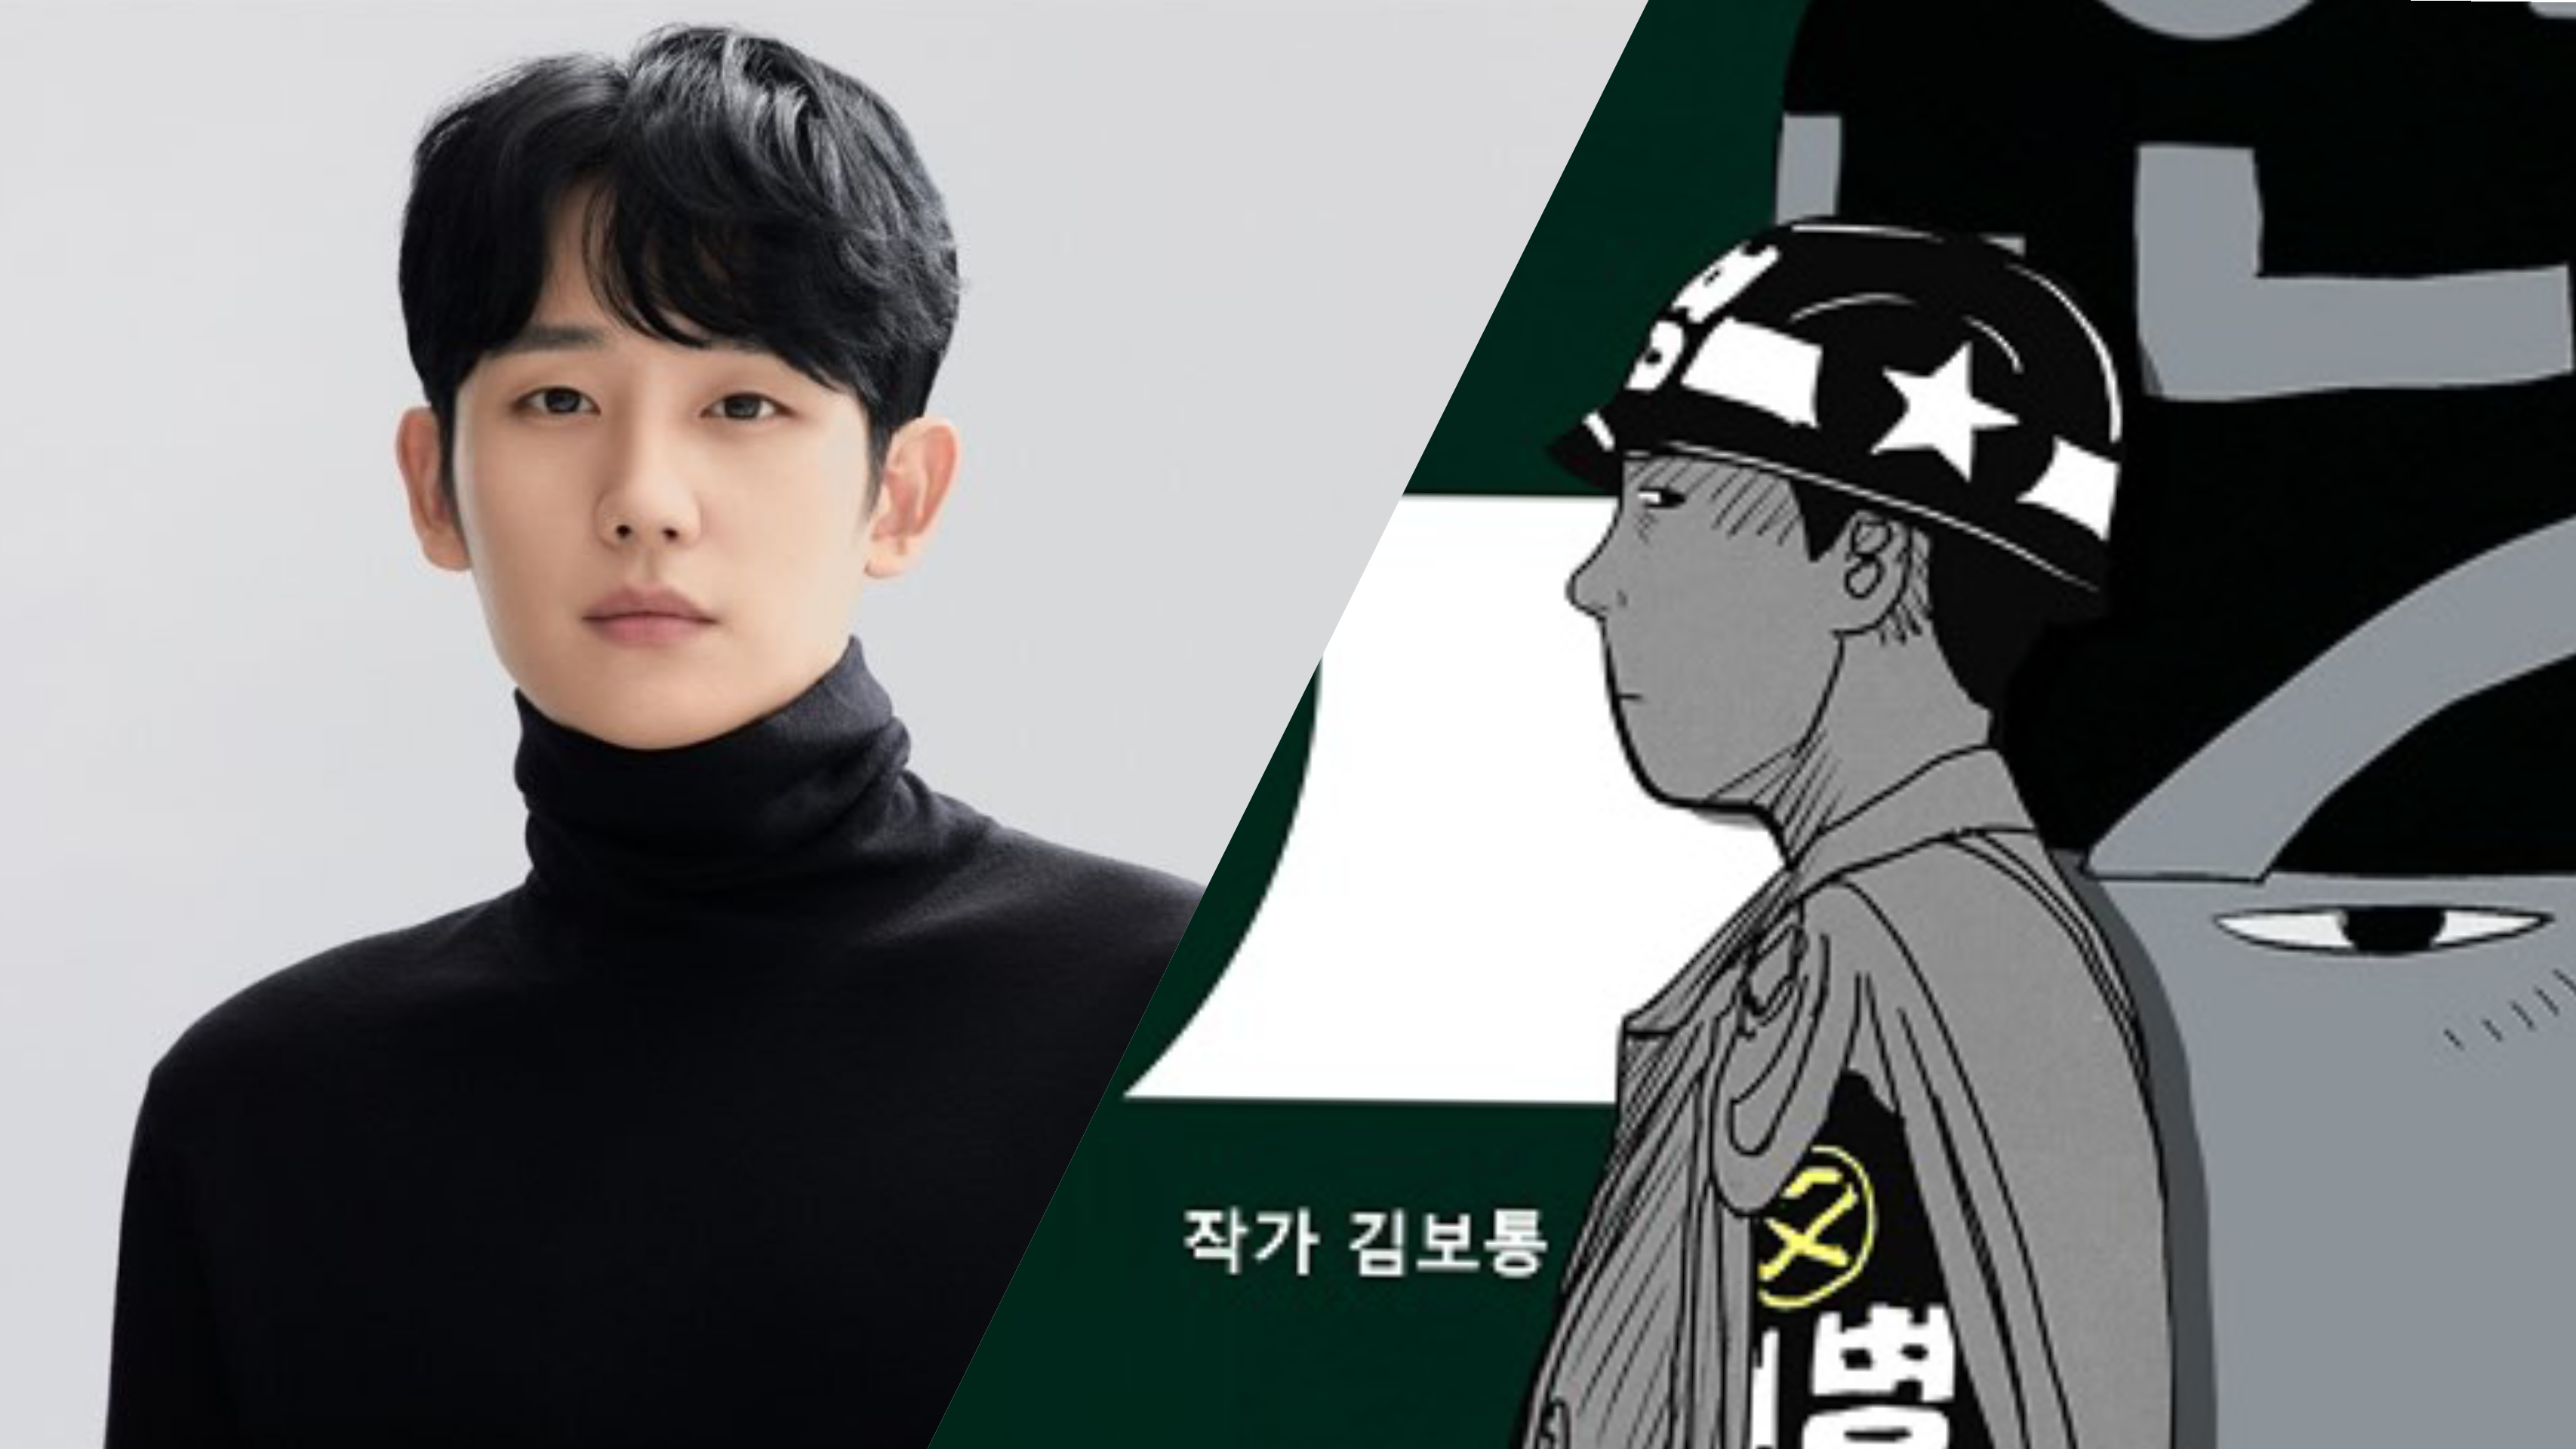 Jung Hae in D.P Dog Day - List of Korean Dramas to watch in 2021